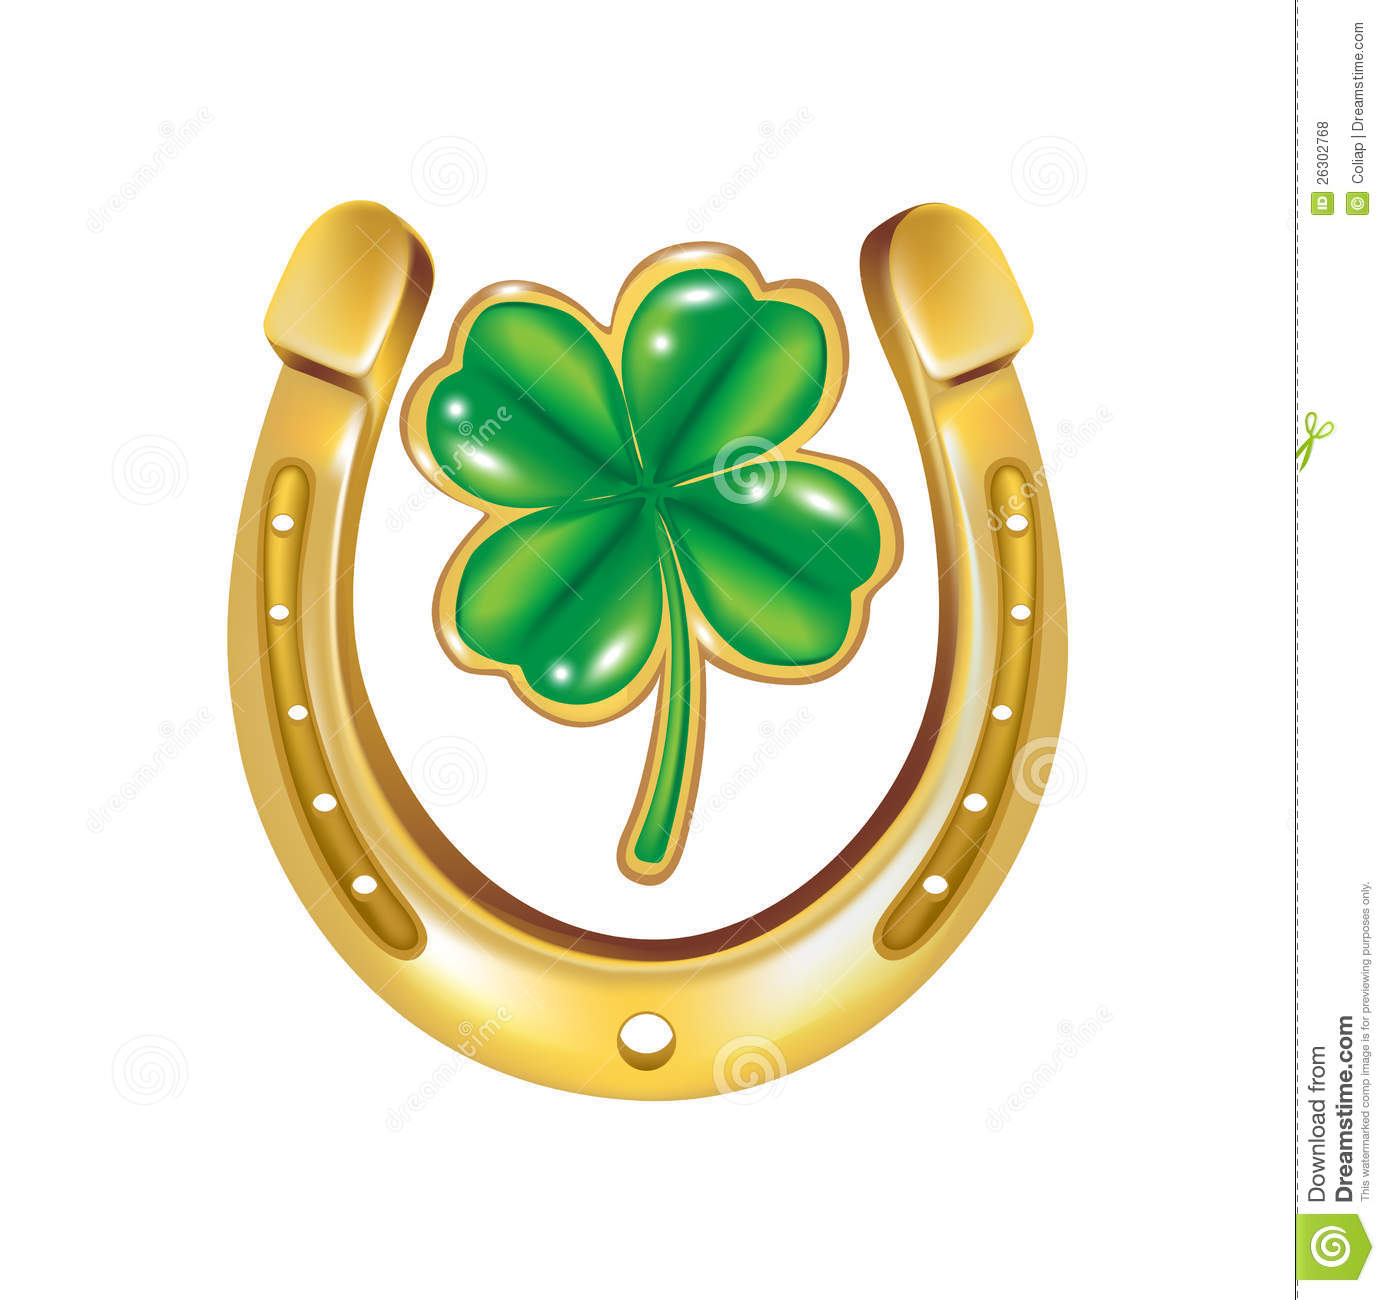 horseshoe-four-leaf-clover-26302768.jpg